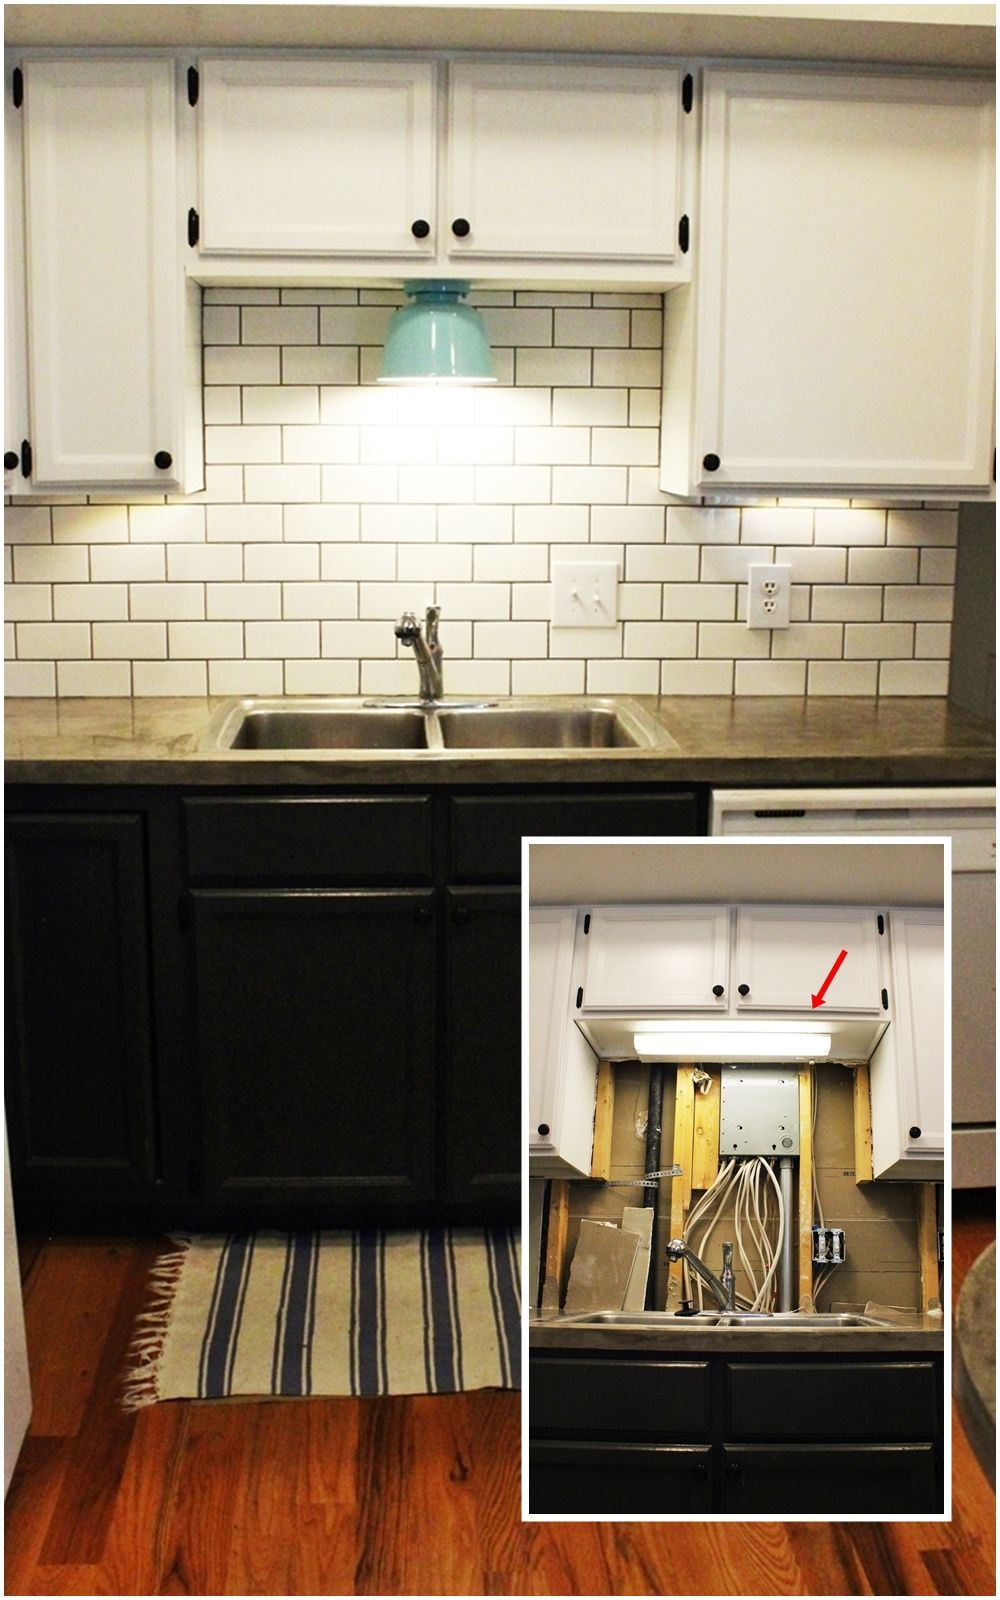 28+ [ kitchen sink light ] | diy kitchen lighting upgrade led